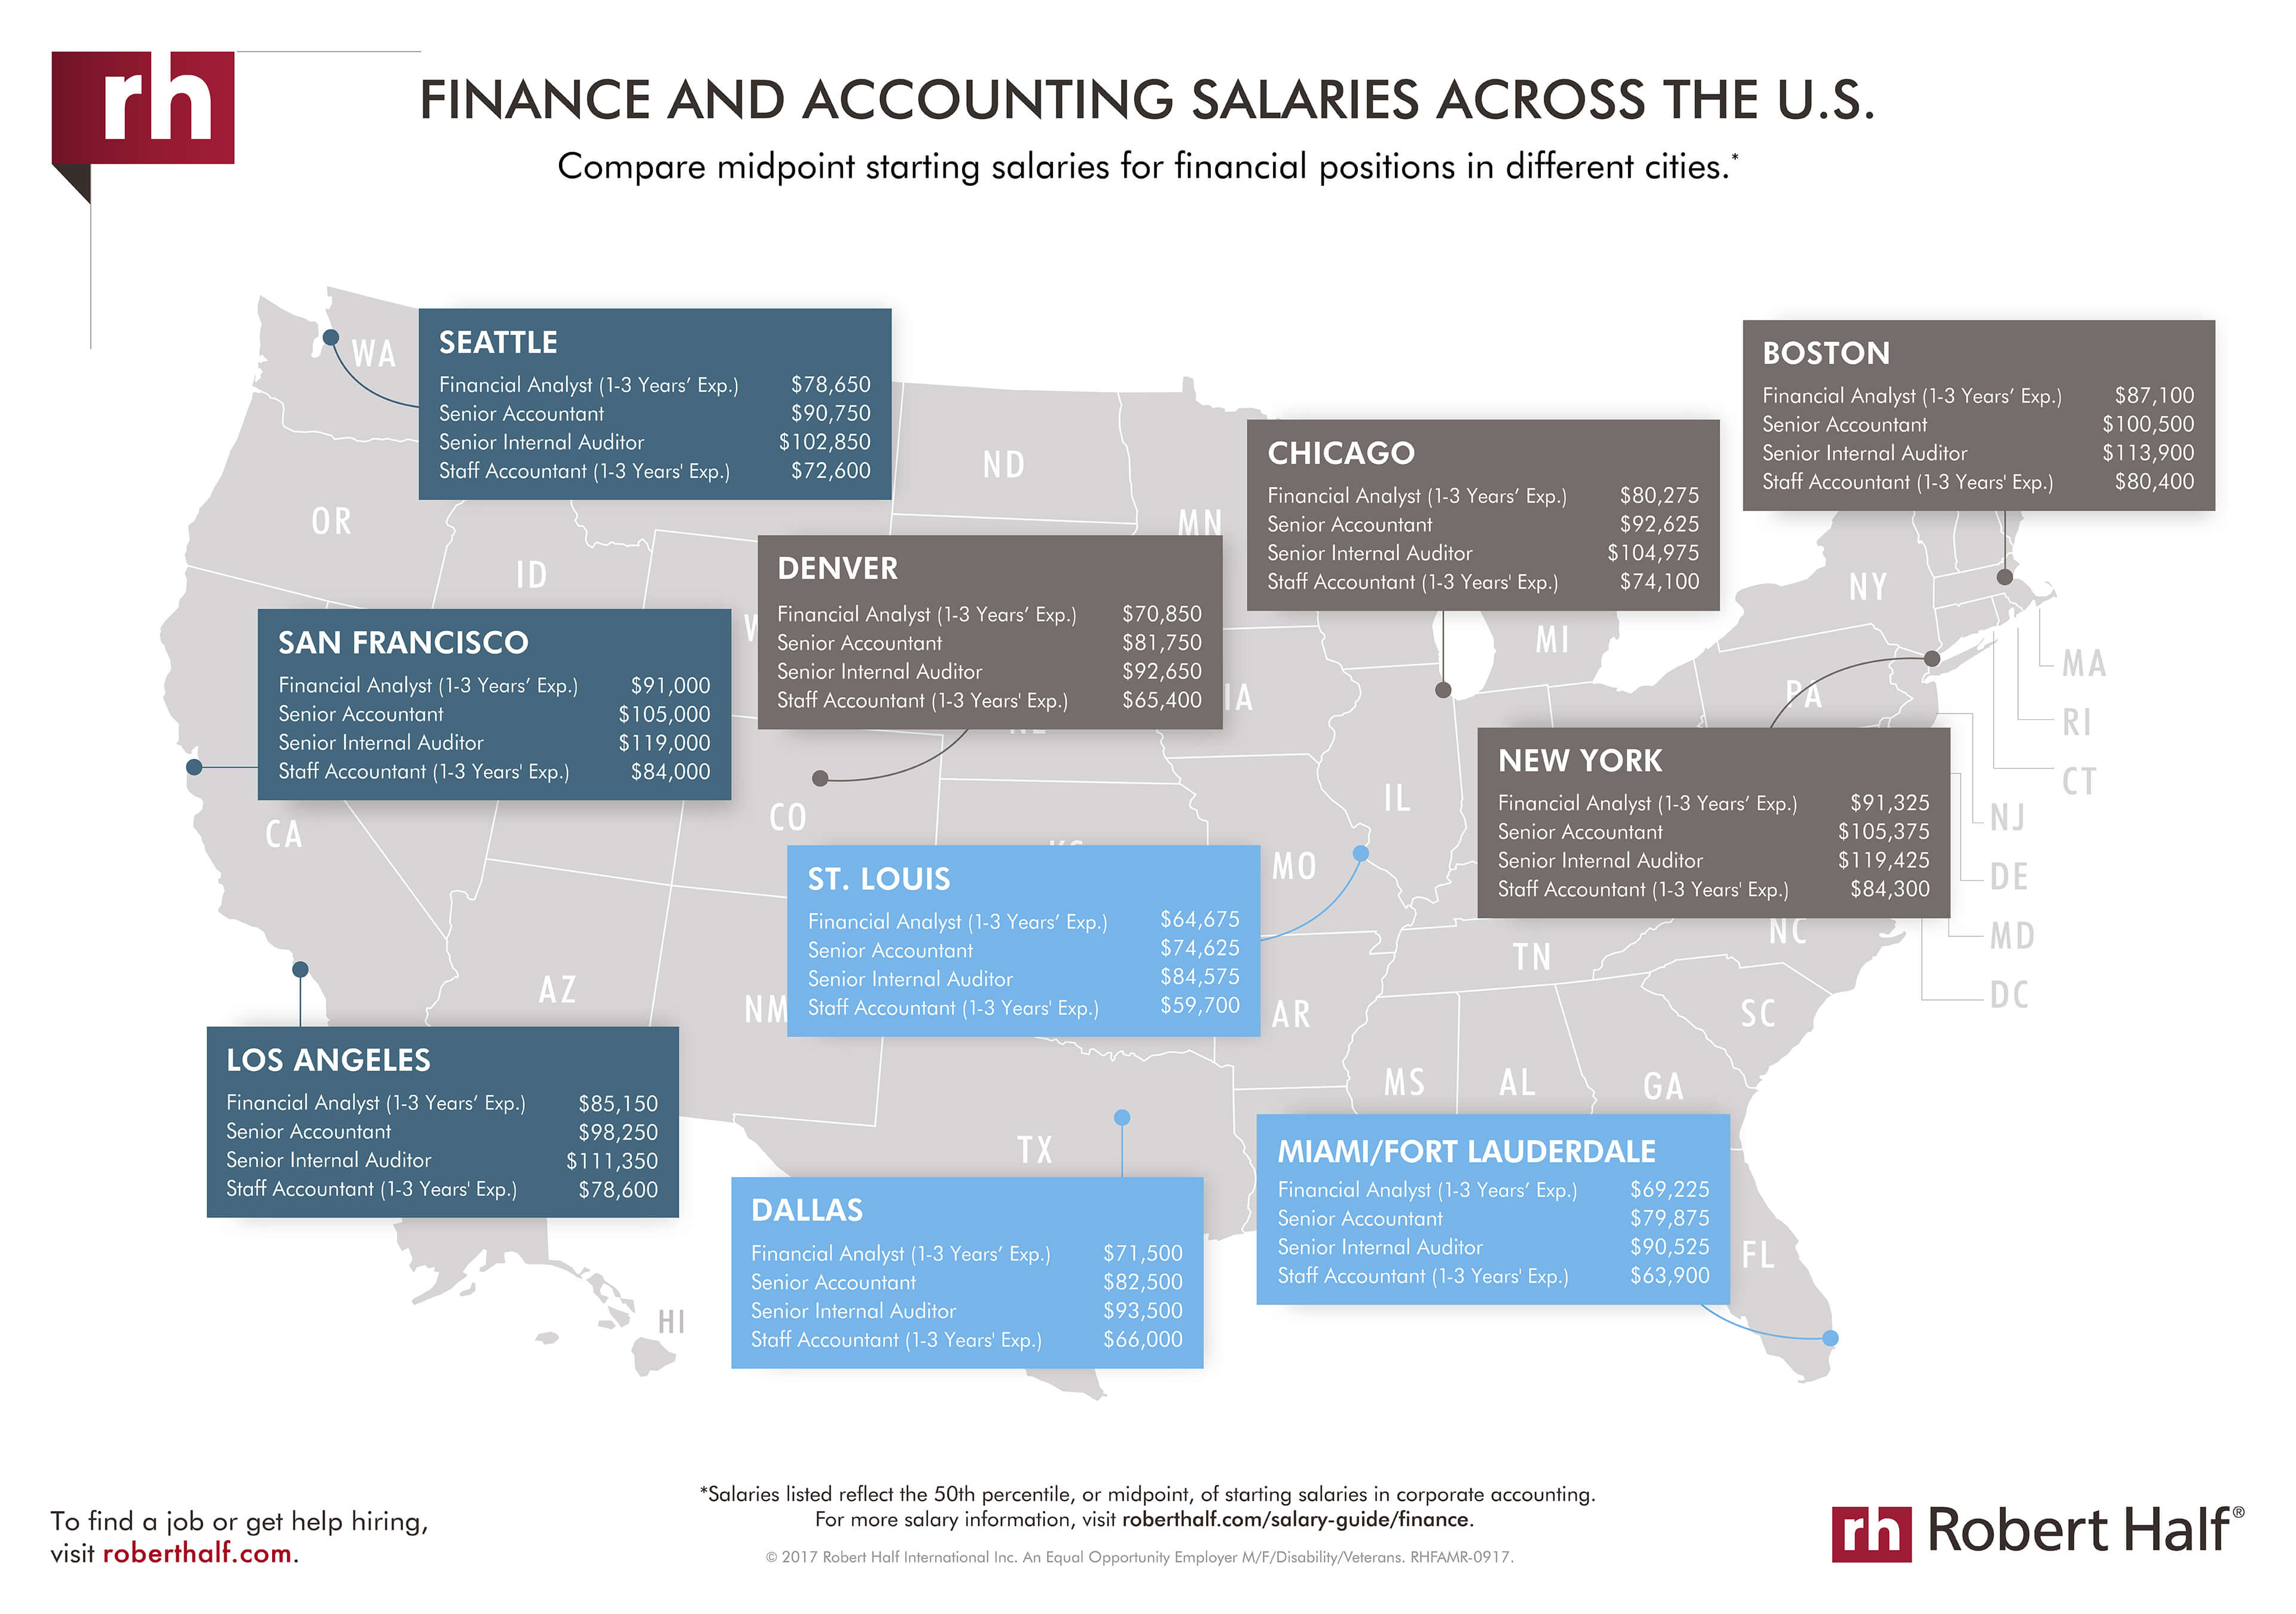 finance and accounting salaries across the us infographic thumbnail